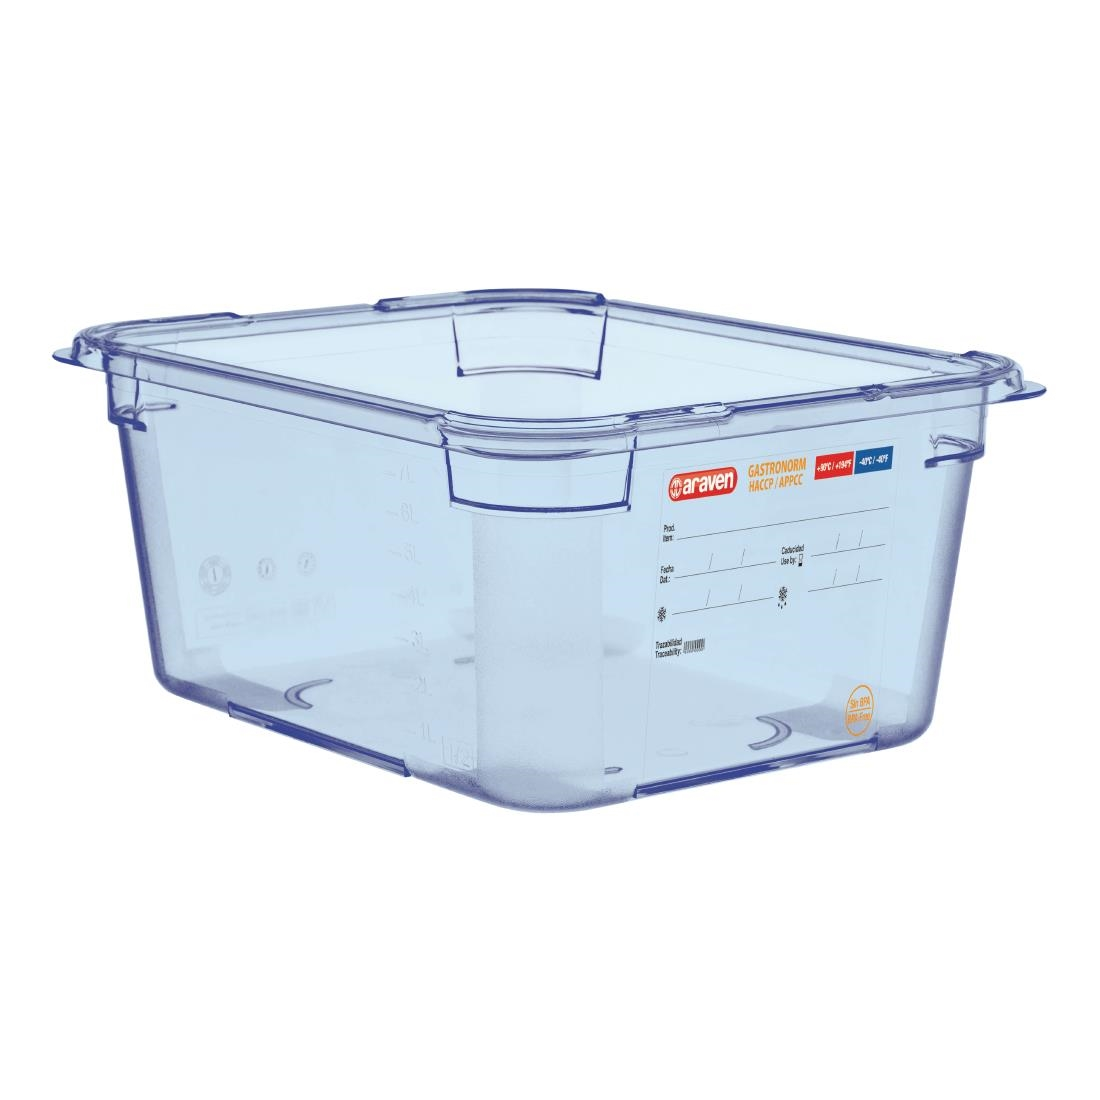 Image of Araven ABS Food Storage Container Blue GN 1/2 150mm